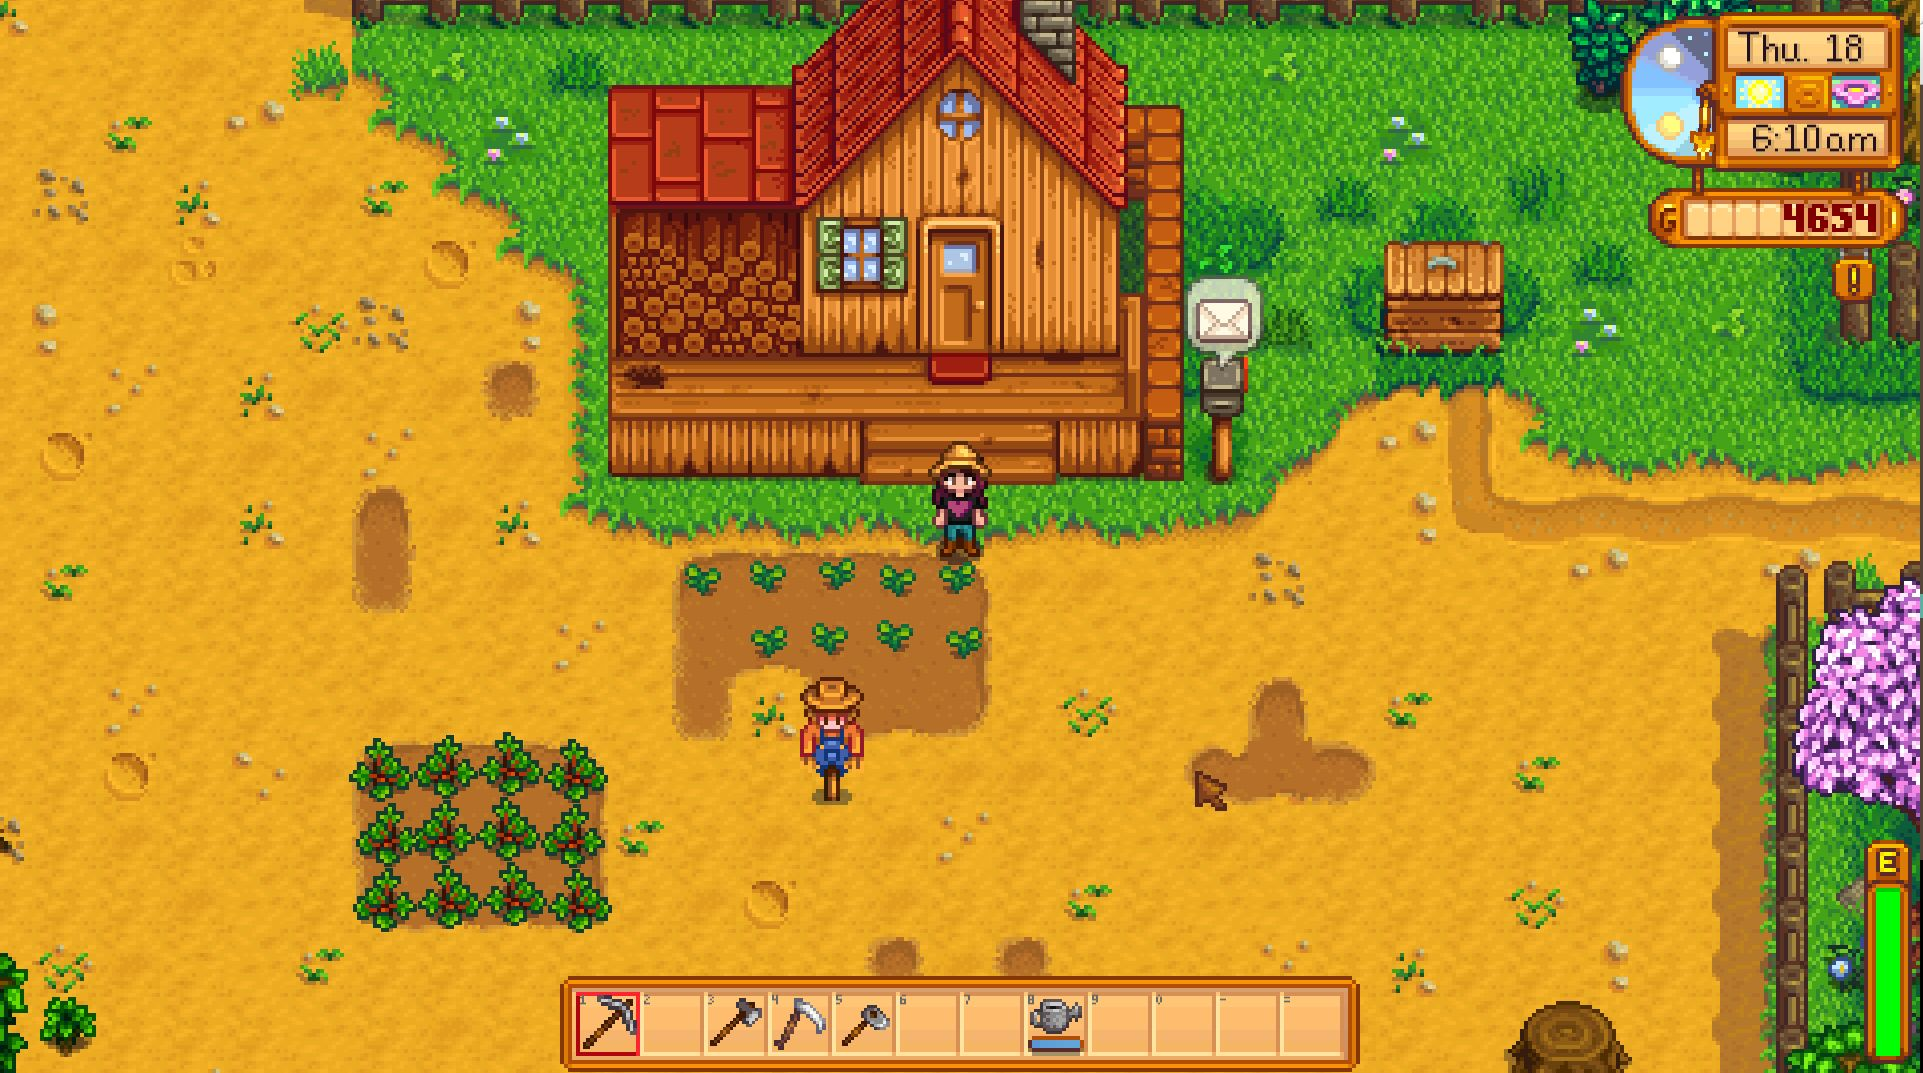 Game of the year 2016 rebekah 39 s picks page 8 for How to fish in stardew valley ps4